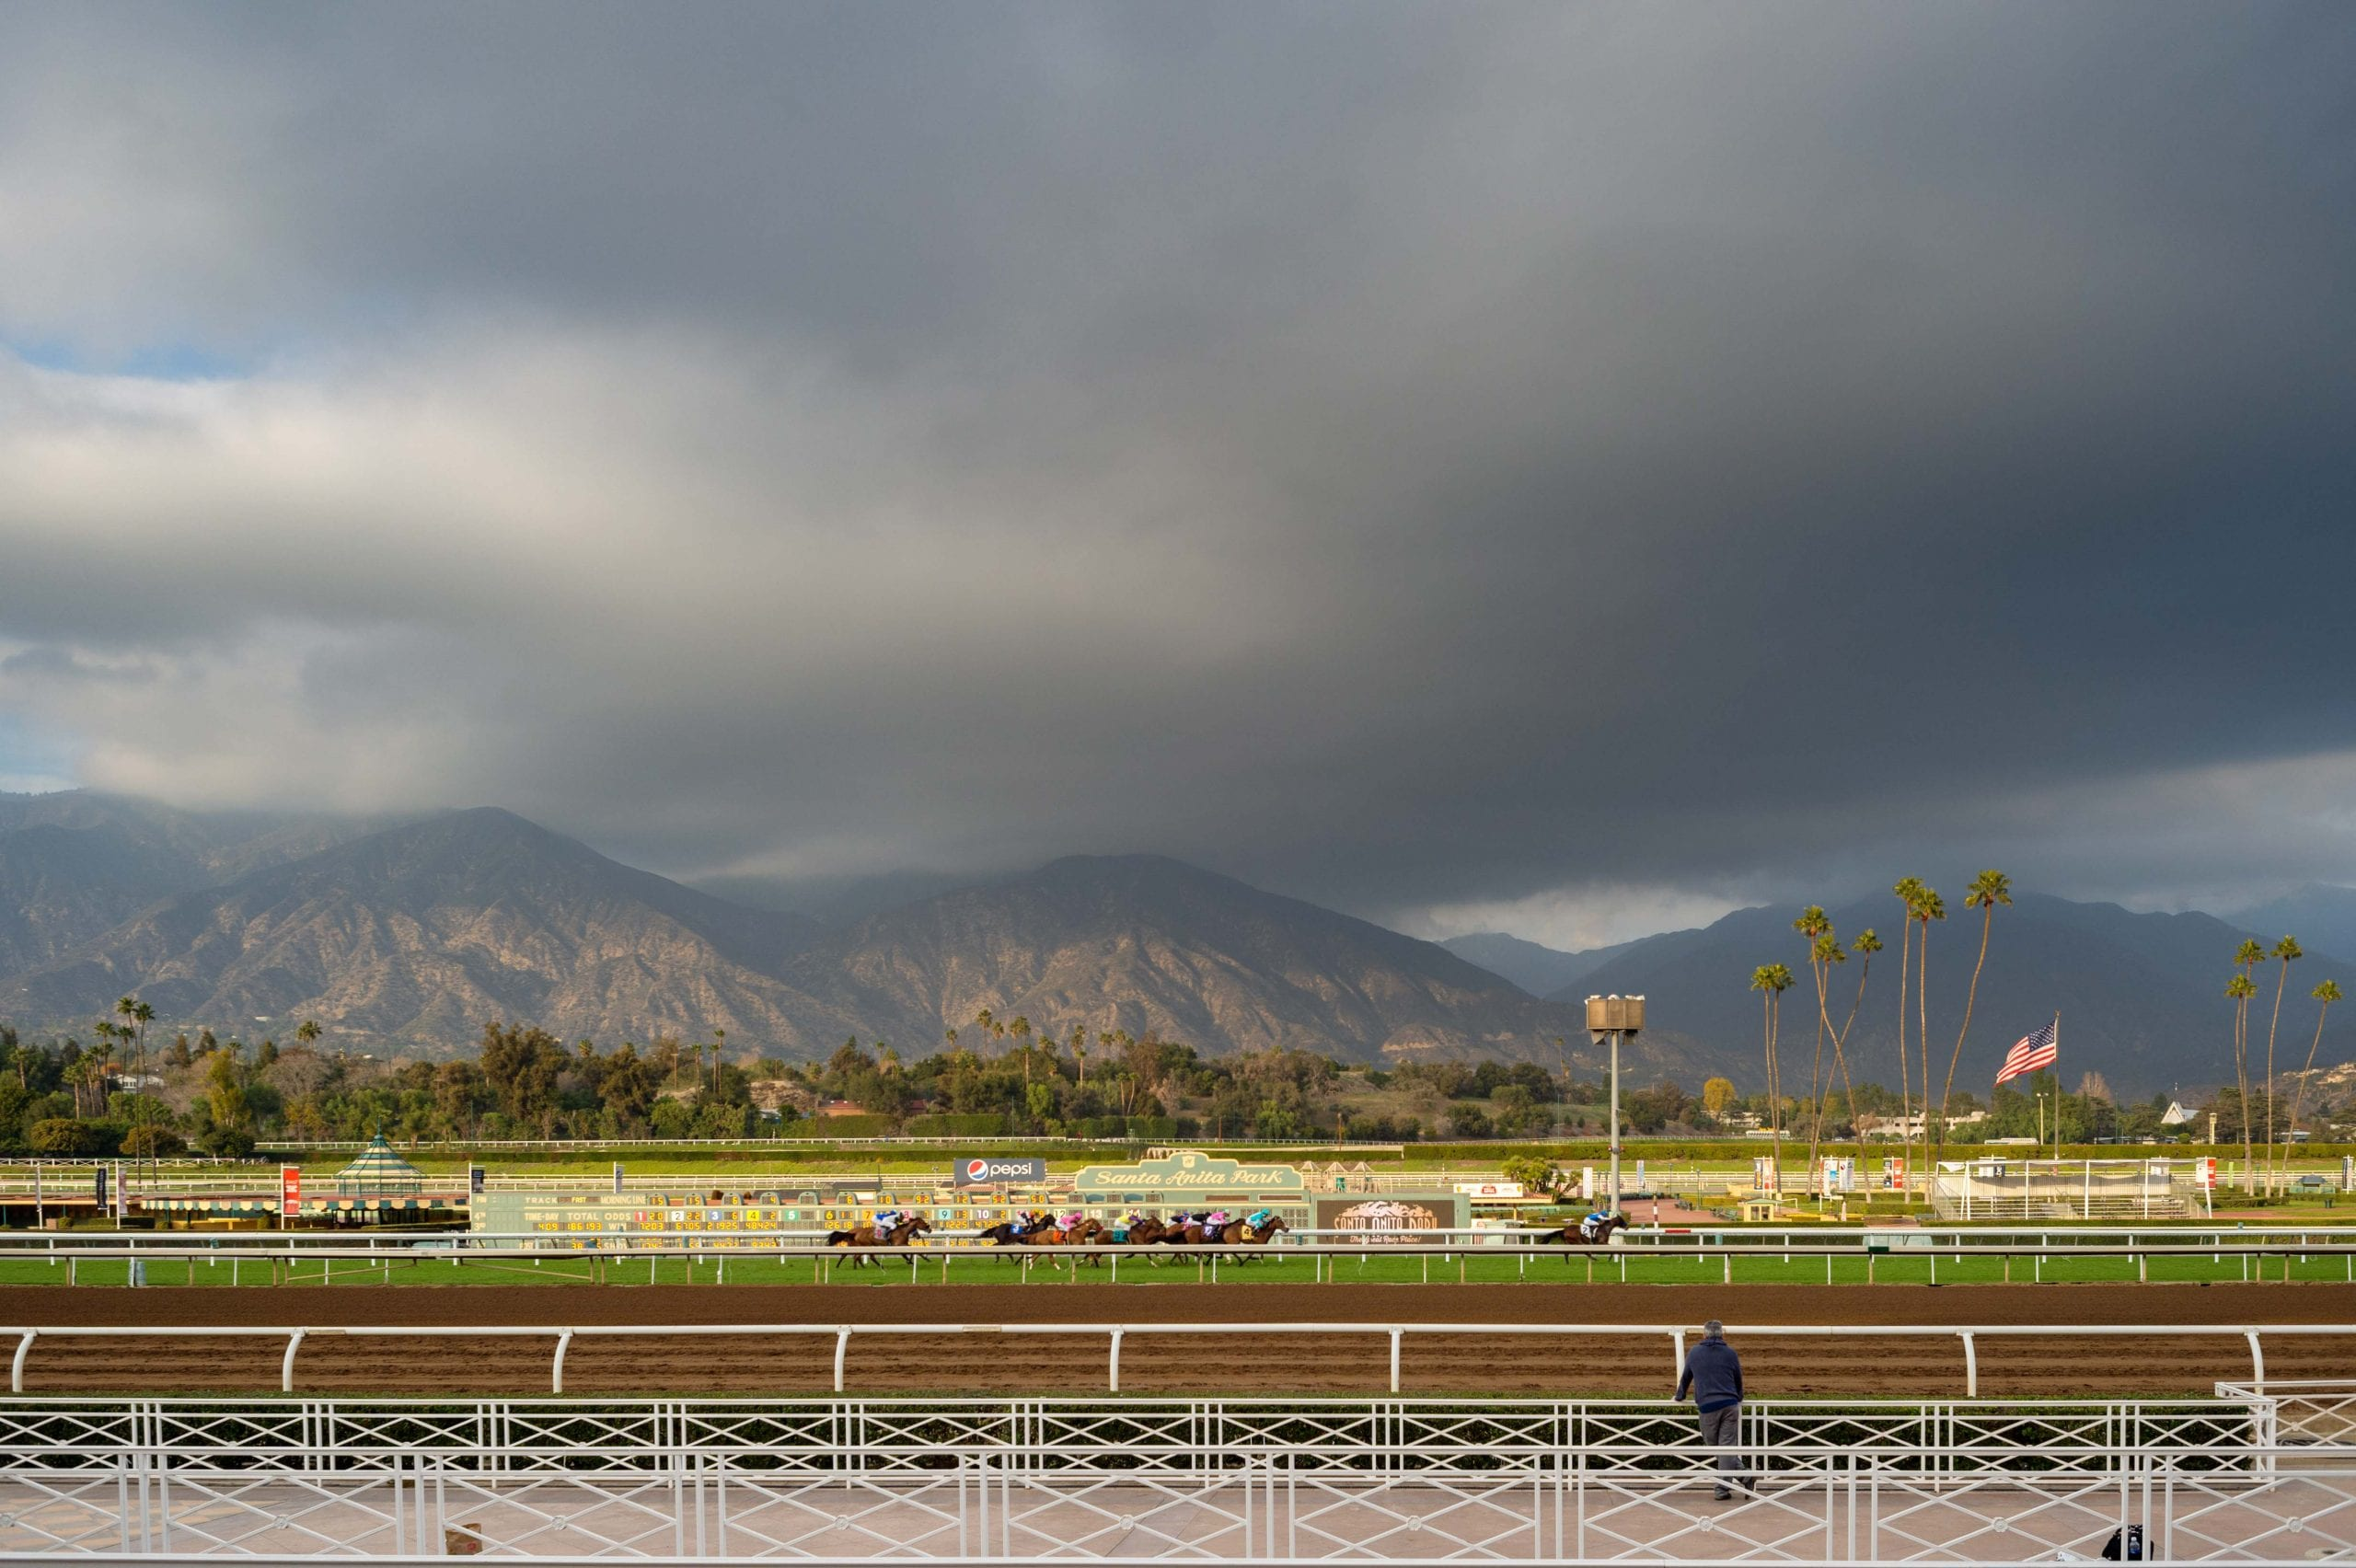 For those who like to play the ponies or attend other events at Santa Anita Park, a reminder that the new Gold Line Arcadia Station -- which opens March 5 -- is a short stroll from the track. Photo by Steve Hymon/Metro.